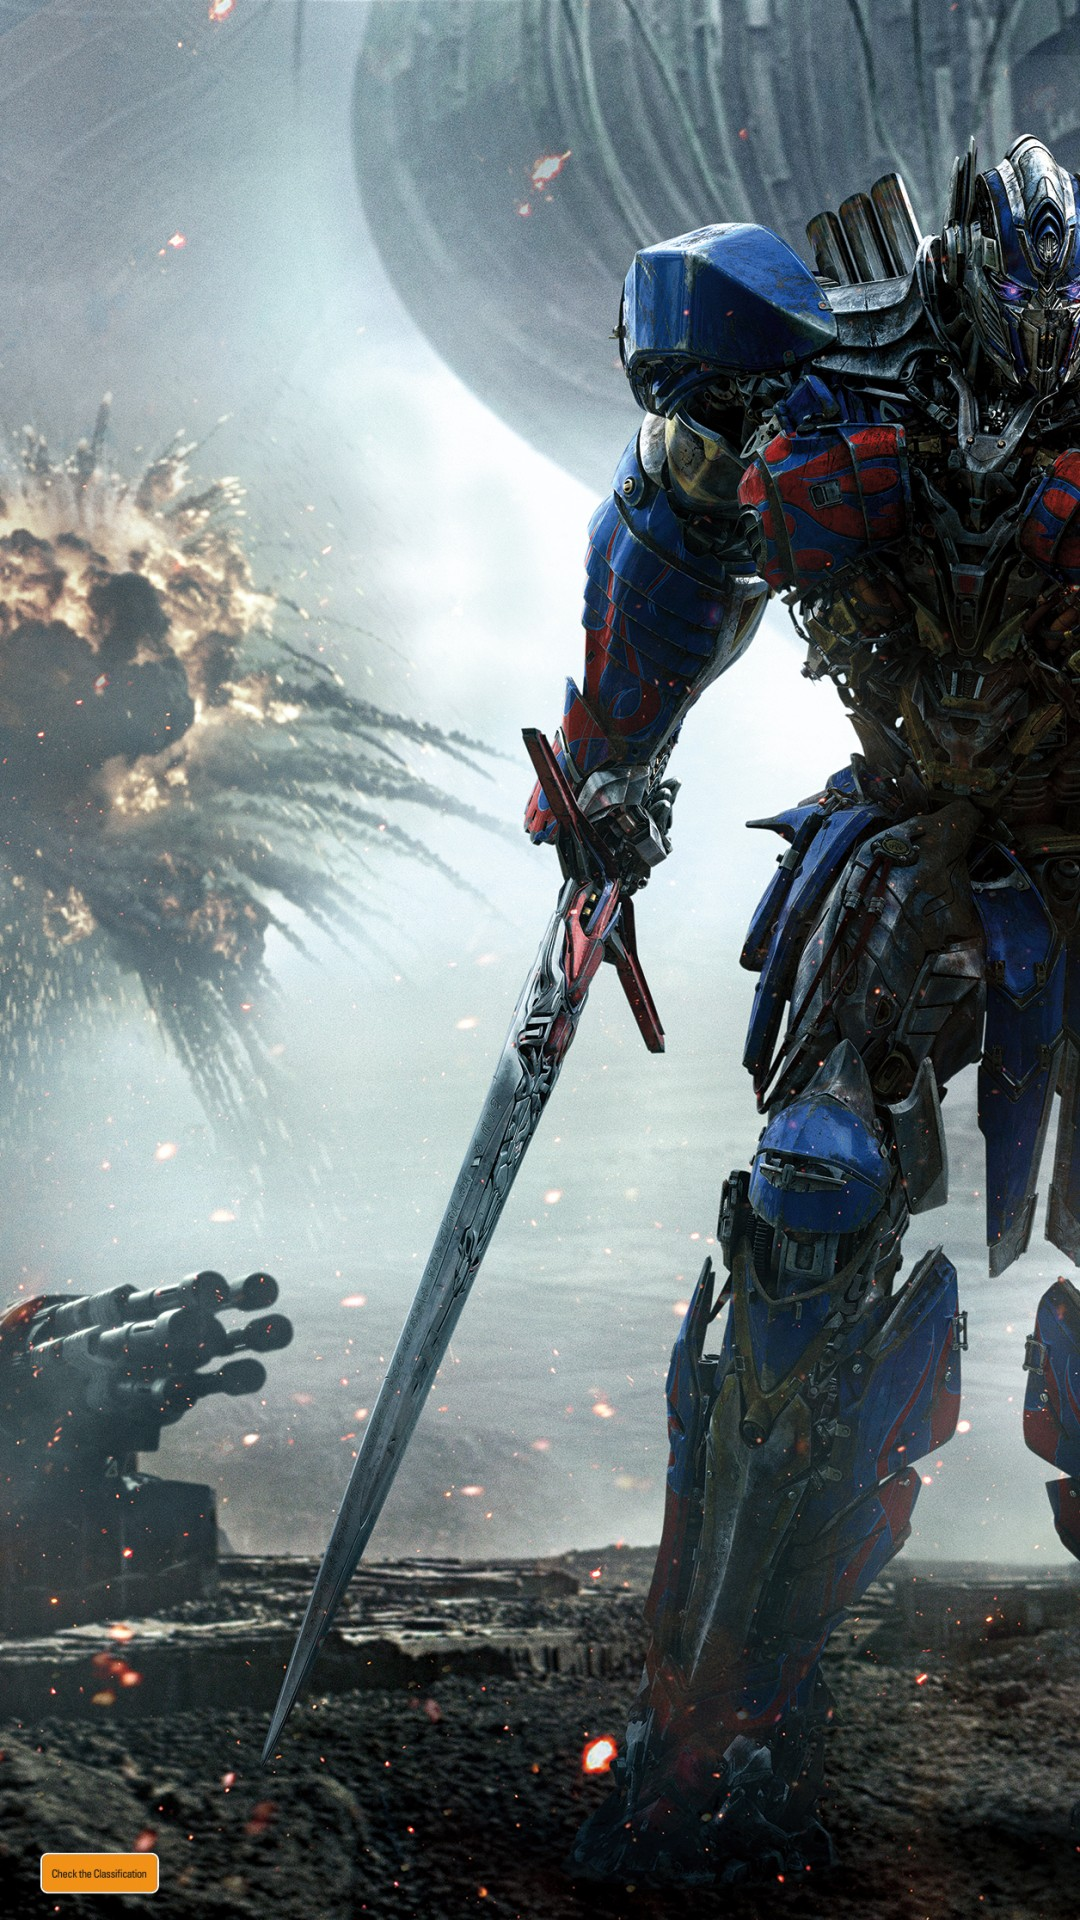 Wallpaper Transformers The Last Knight Transformers 5 4k Movies 13755 Page 3